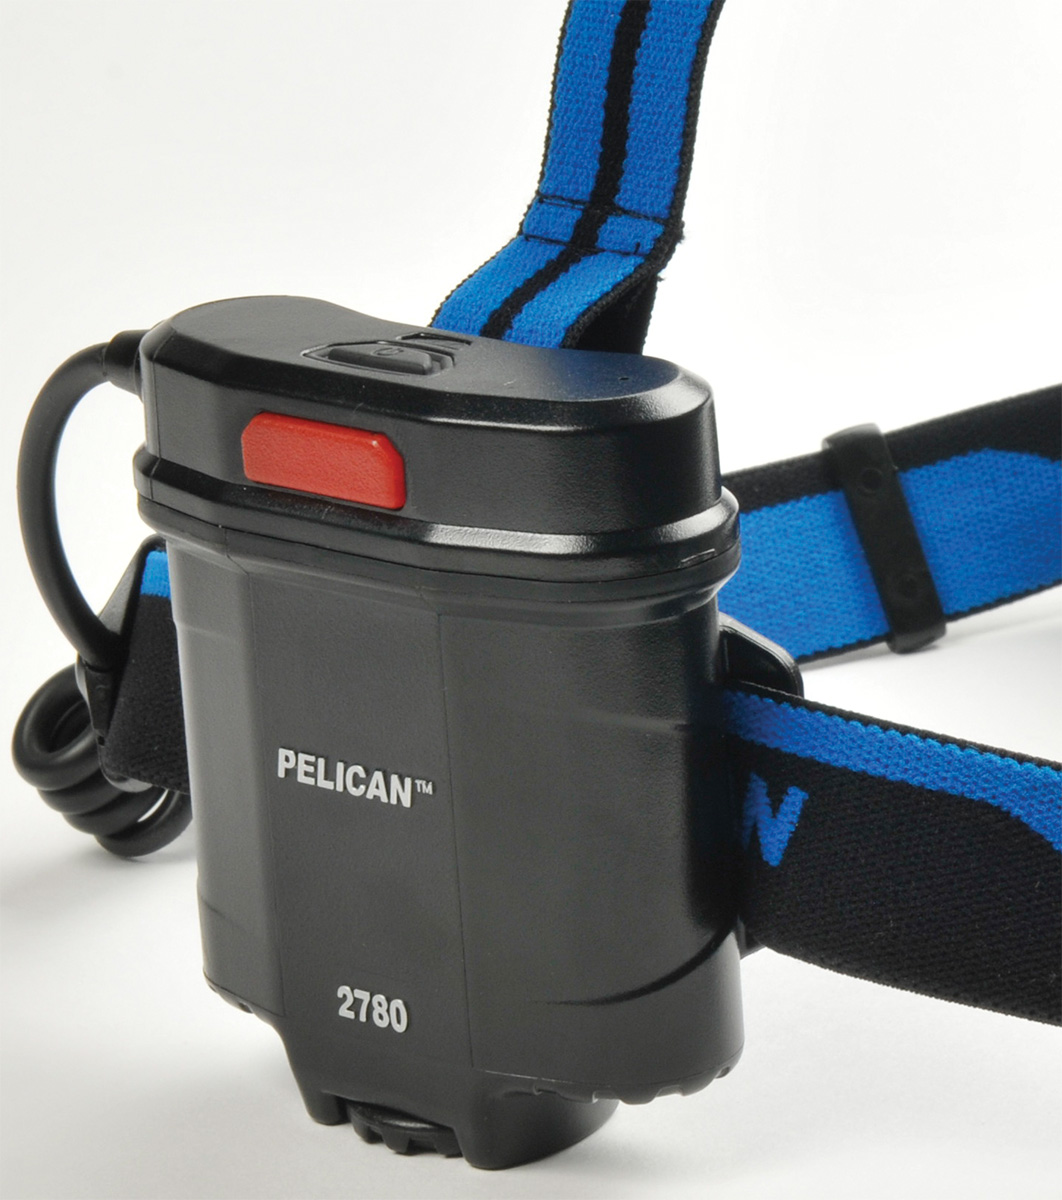 pelican 2780 battery pack led headlamp